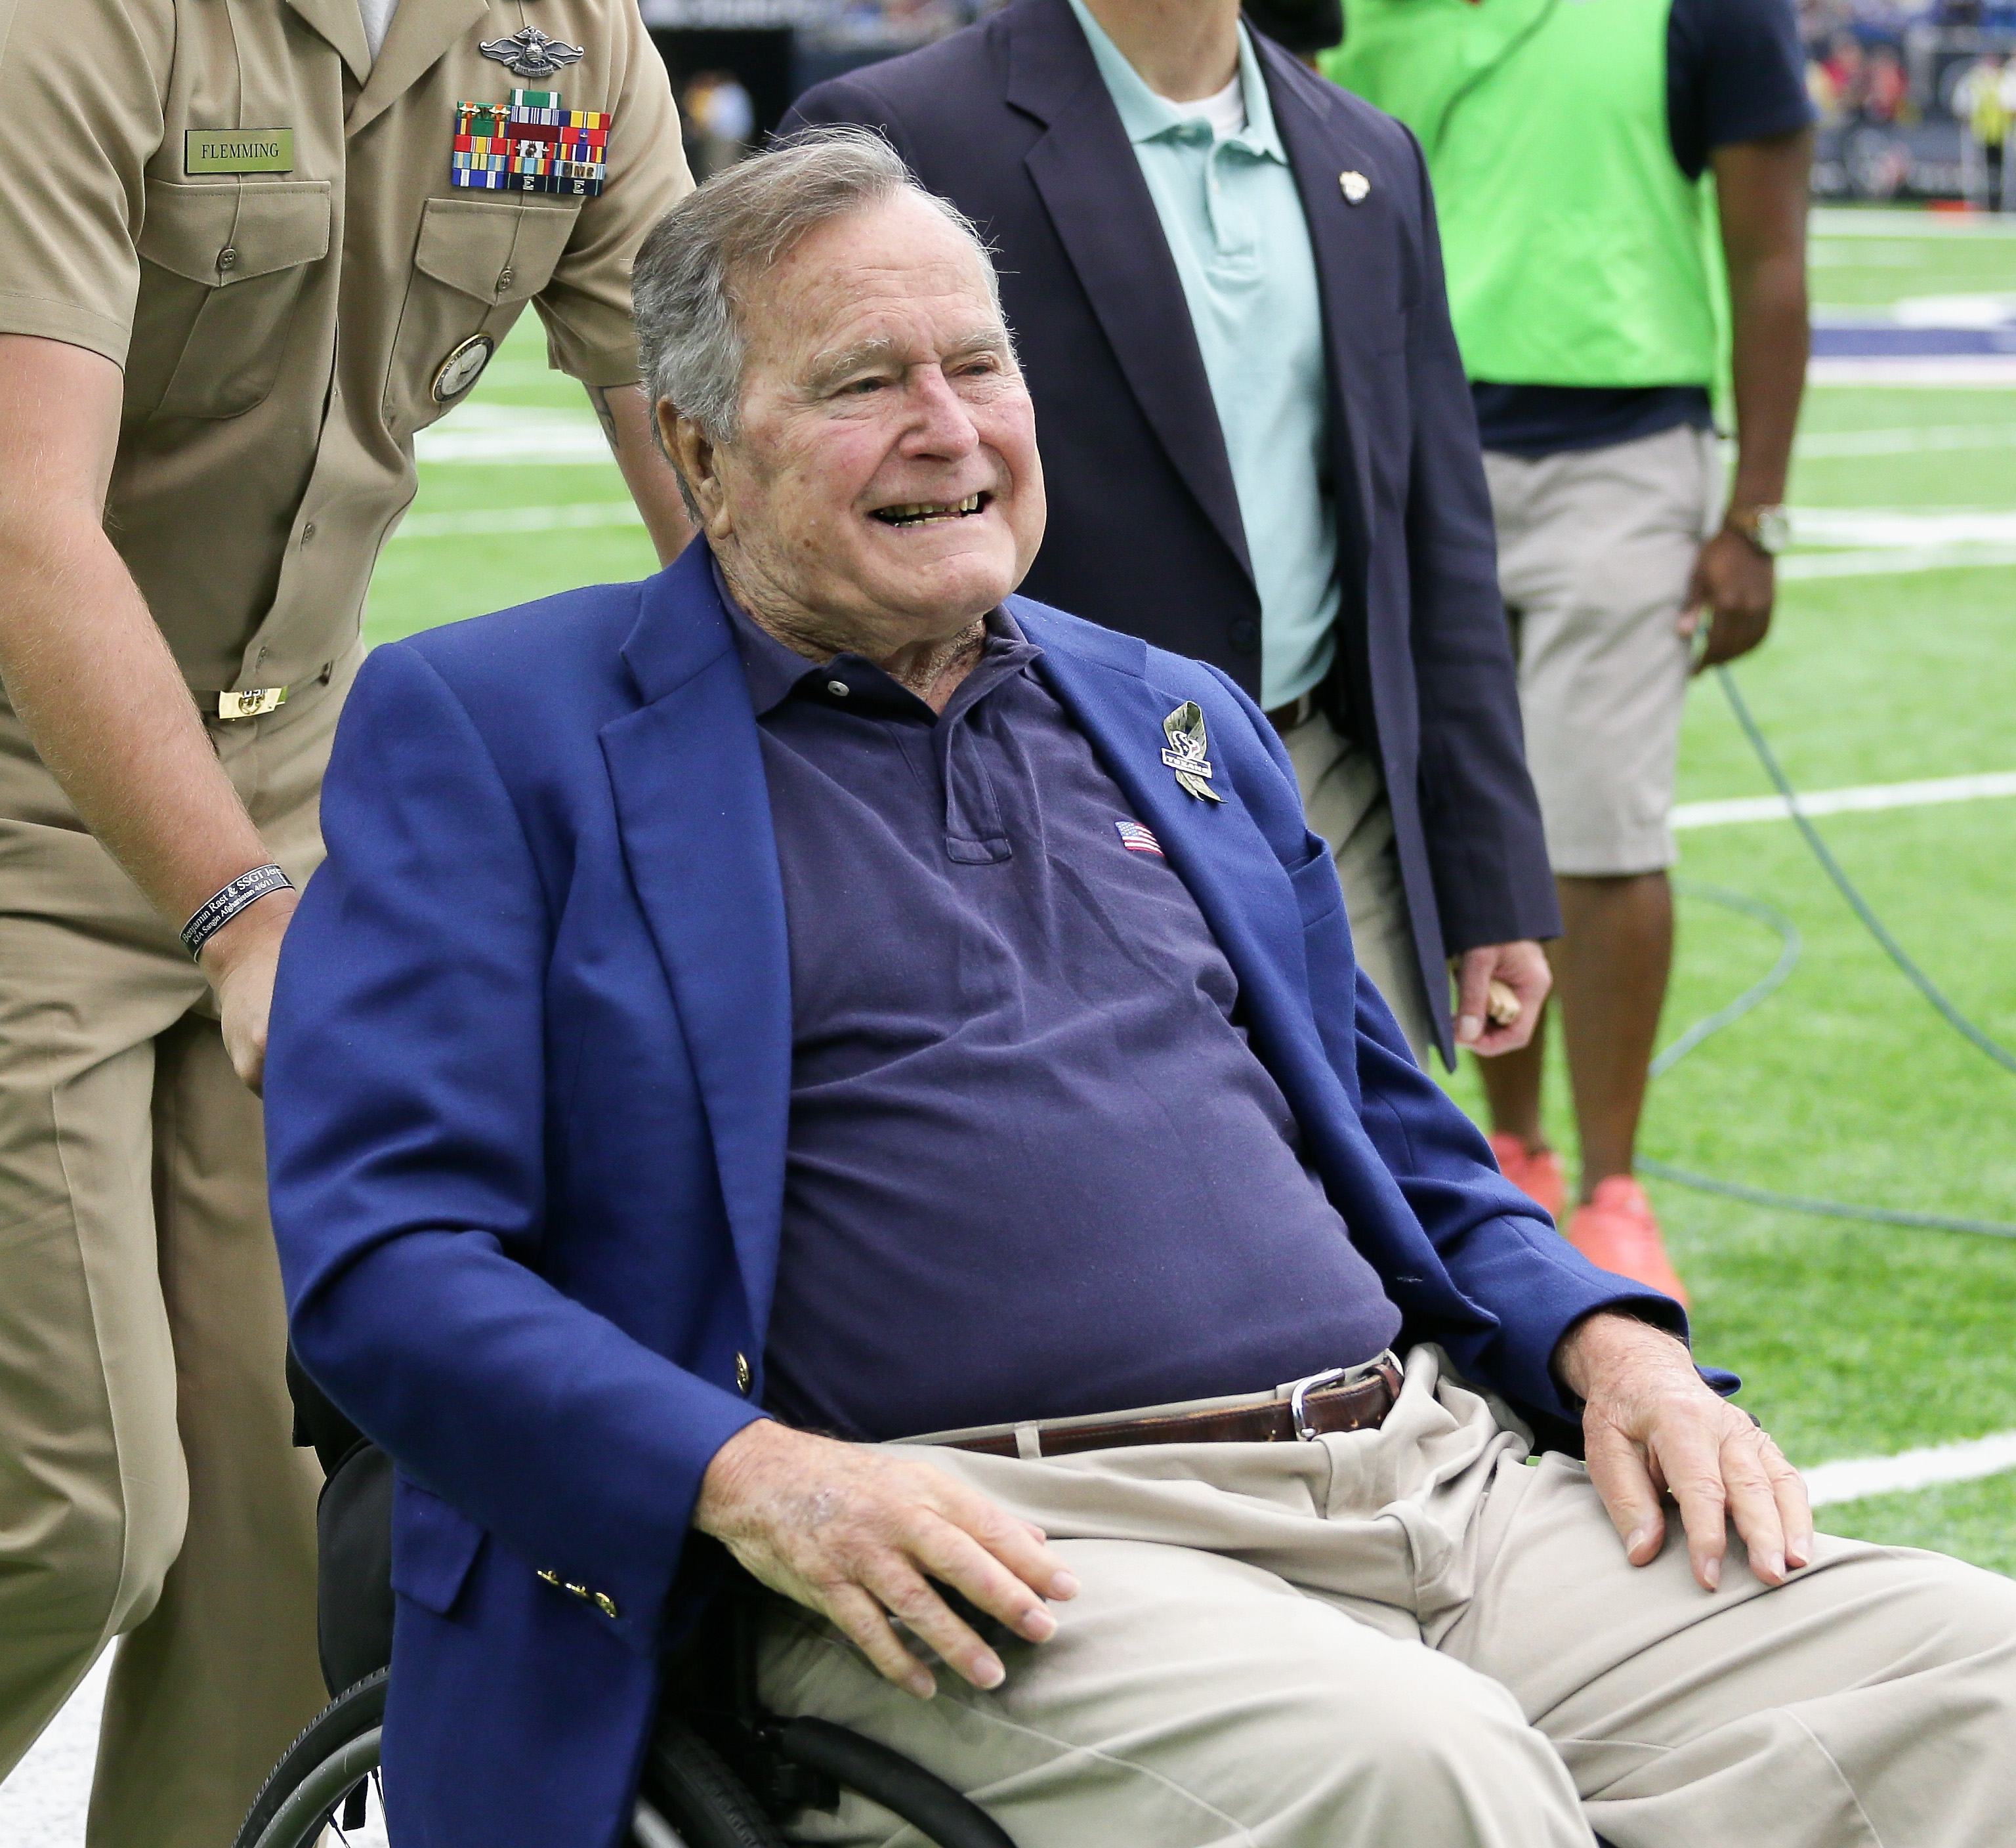 President George H.W. Bush is taken off the field after flipping the coin between the Detroit Lions and Houston Texans at NRG Stadium on October 30, 2016 in Houston, Texas.